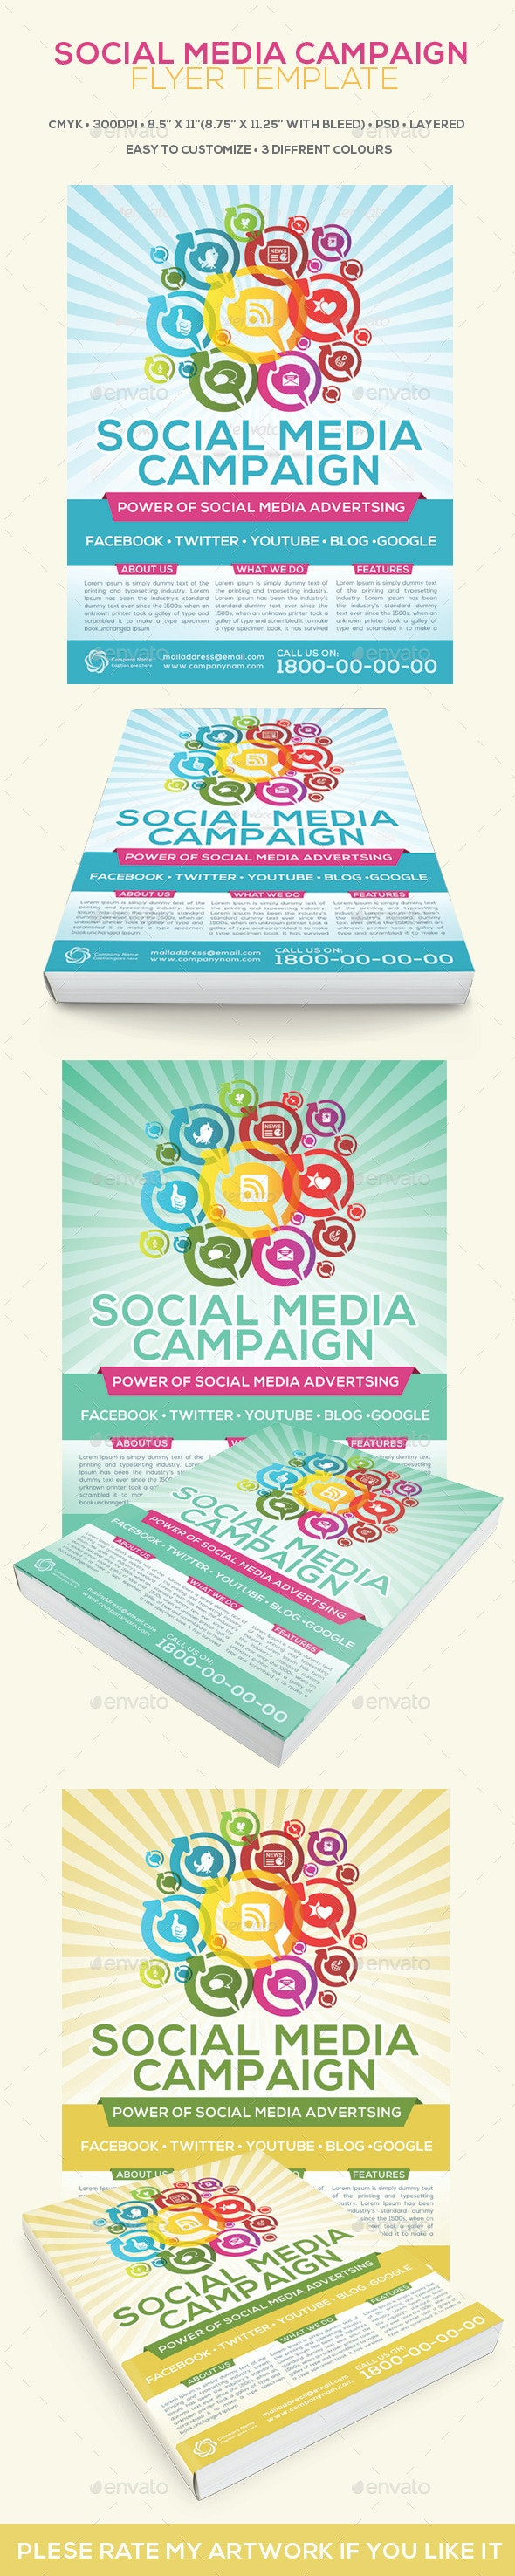 Social Media Campaign Flyer Template - Flyers Print Templates